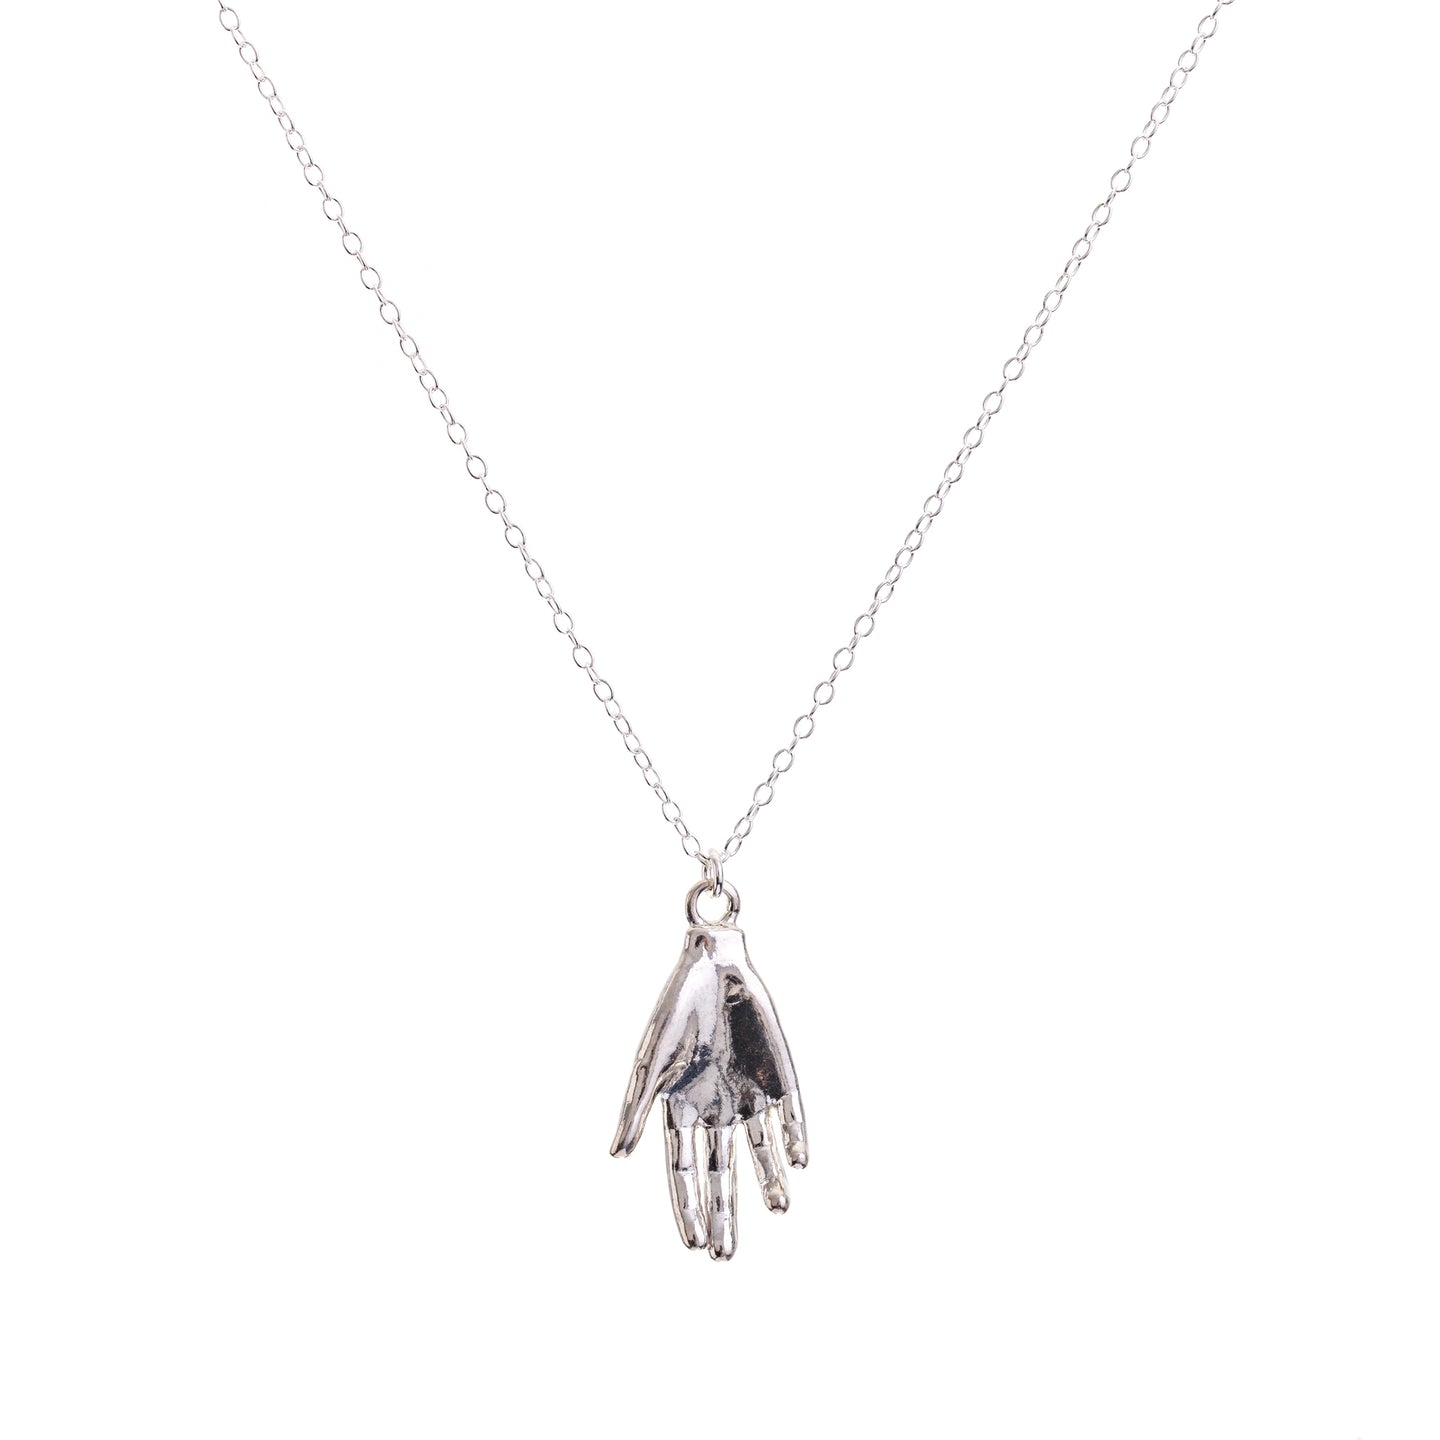 Minimal Silver Protective Hand Necklace